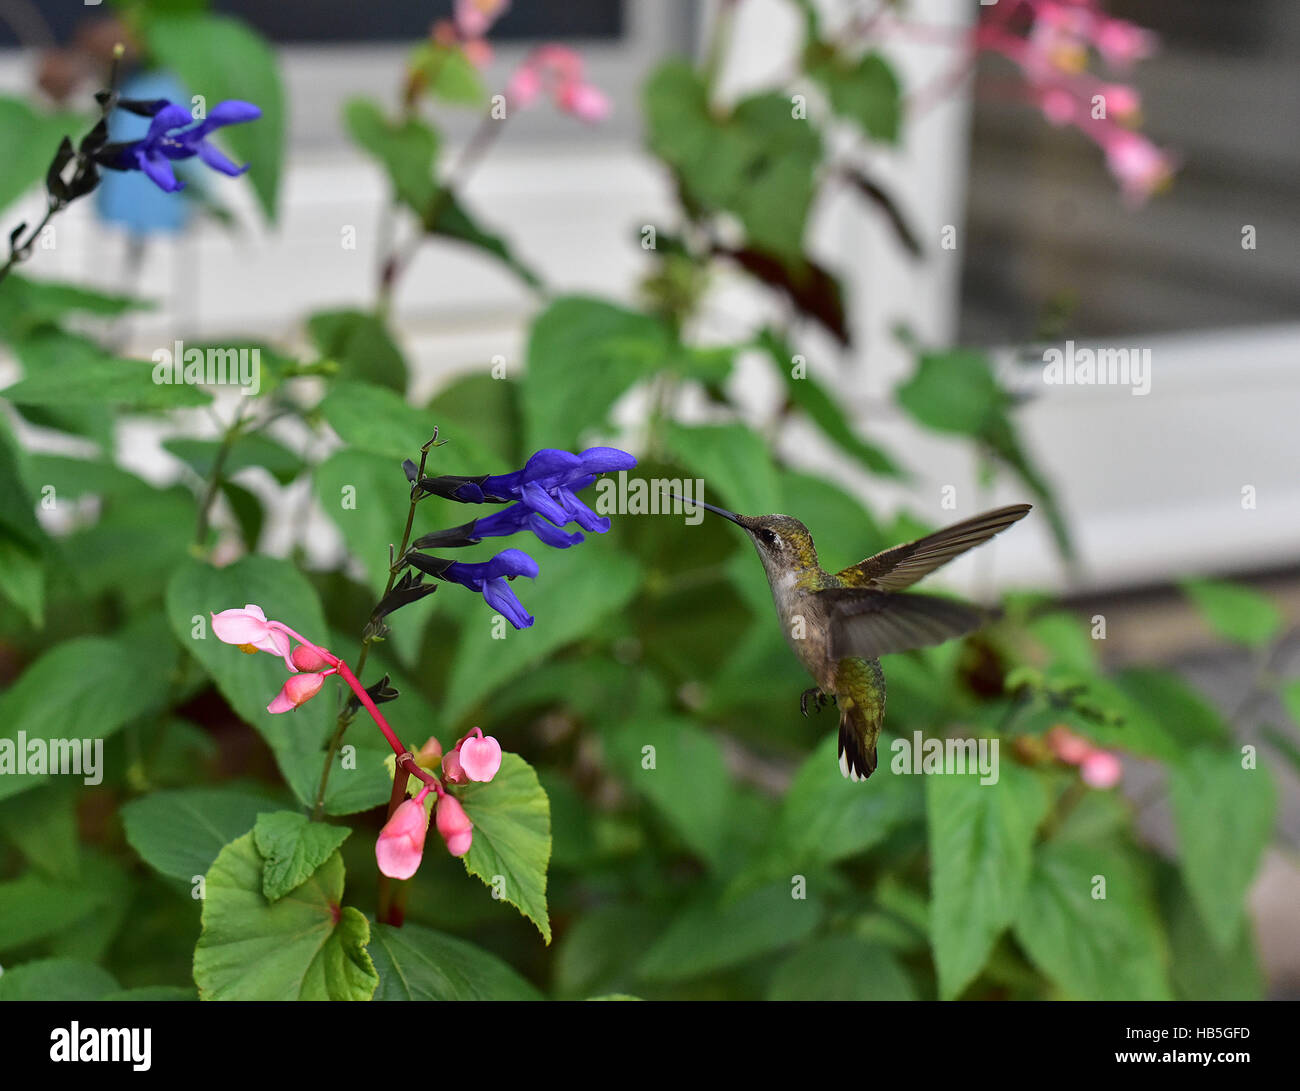 Hummingbird (Archilochus colubris) hovering to inspect a flower on a Butterfly Bush (Asclepias syriaca) before gathering its nectar. Stock Photo